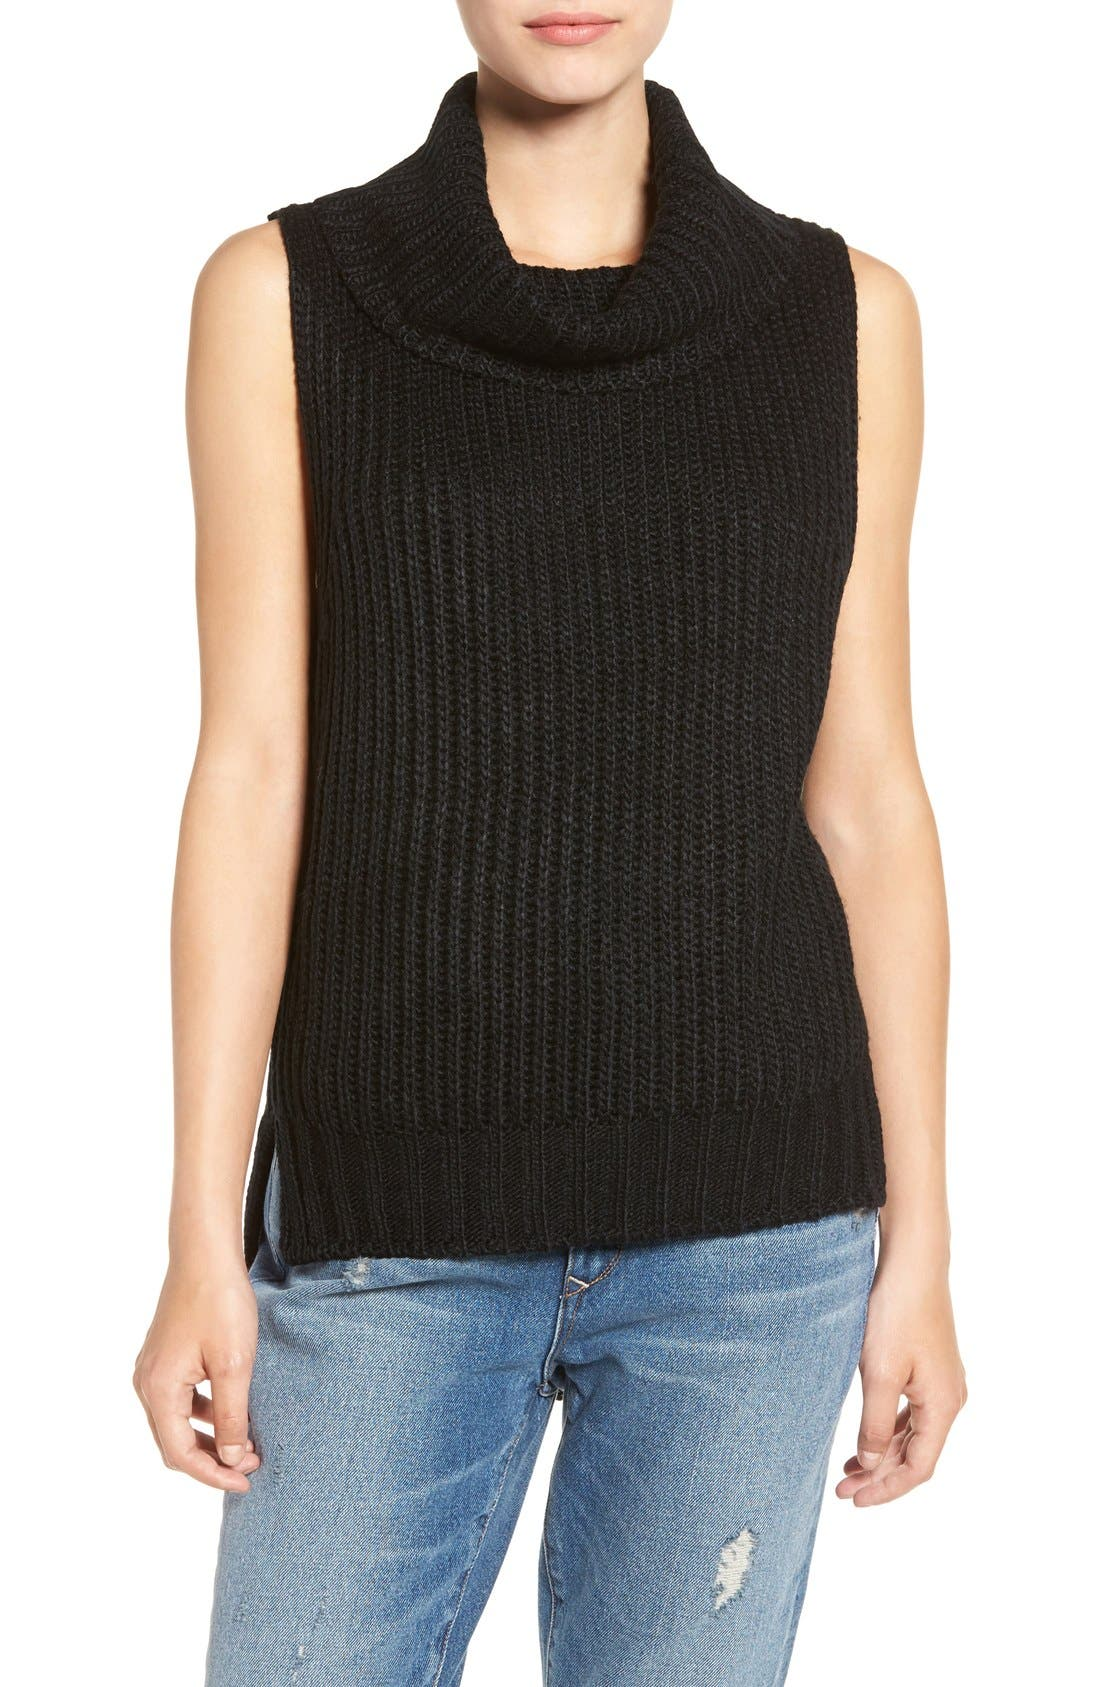 ASTR High/Low Turtleneck Sweater,                             Main thumbnail 1, color,                             001